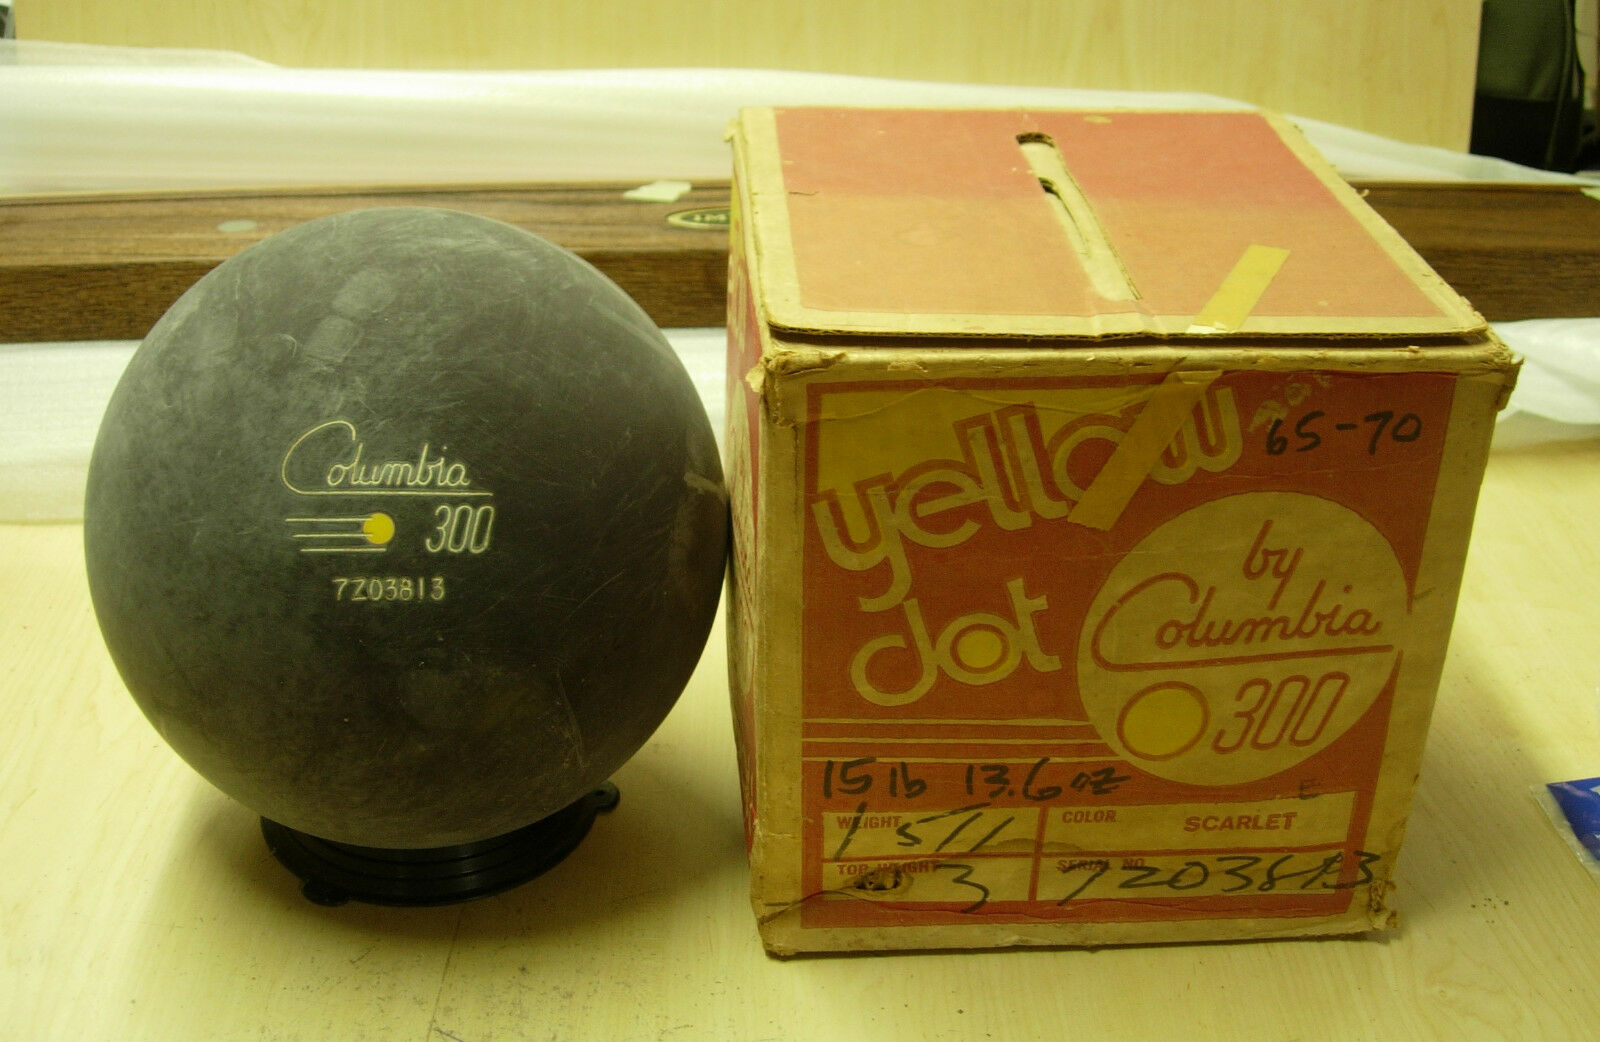 15oz Columbia YD San Antonio Texas Yellow Dot Bowling Ball 7Z03813 AS IS